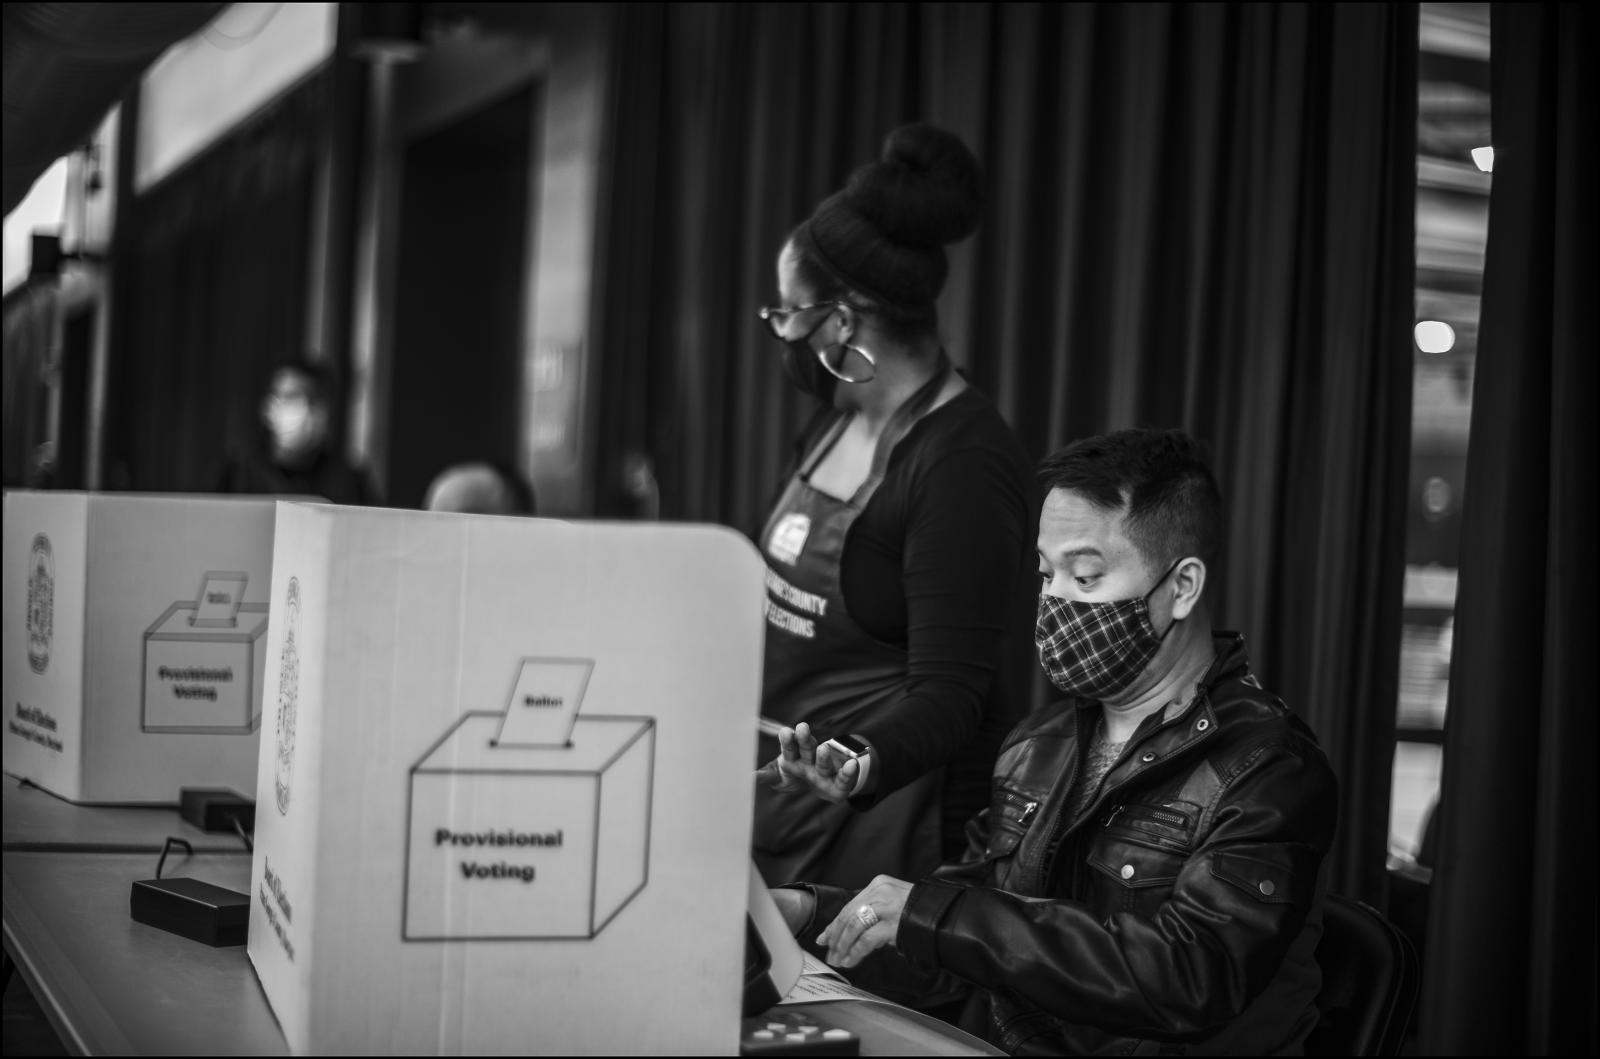 "First time voter, ""Elvid"" an immigrant from Viet Nam casts his ballot during early voting (11/02/20). He was voting at Upper Marlboro (MD) Equestrian Center. In back,election polling worker Ashley Owens. Prince George's County, MD."